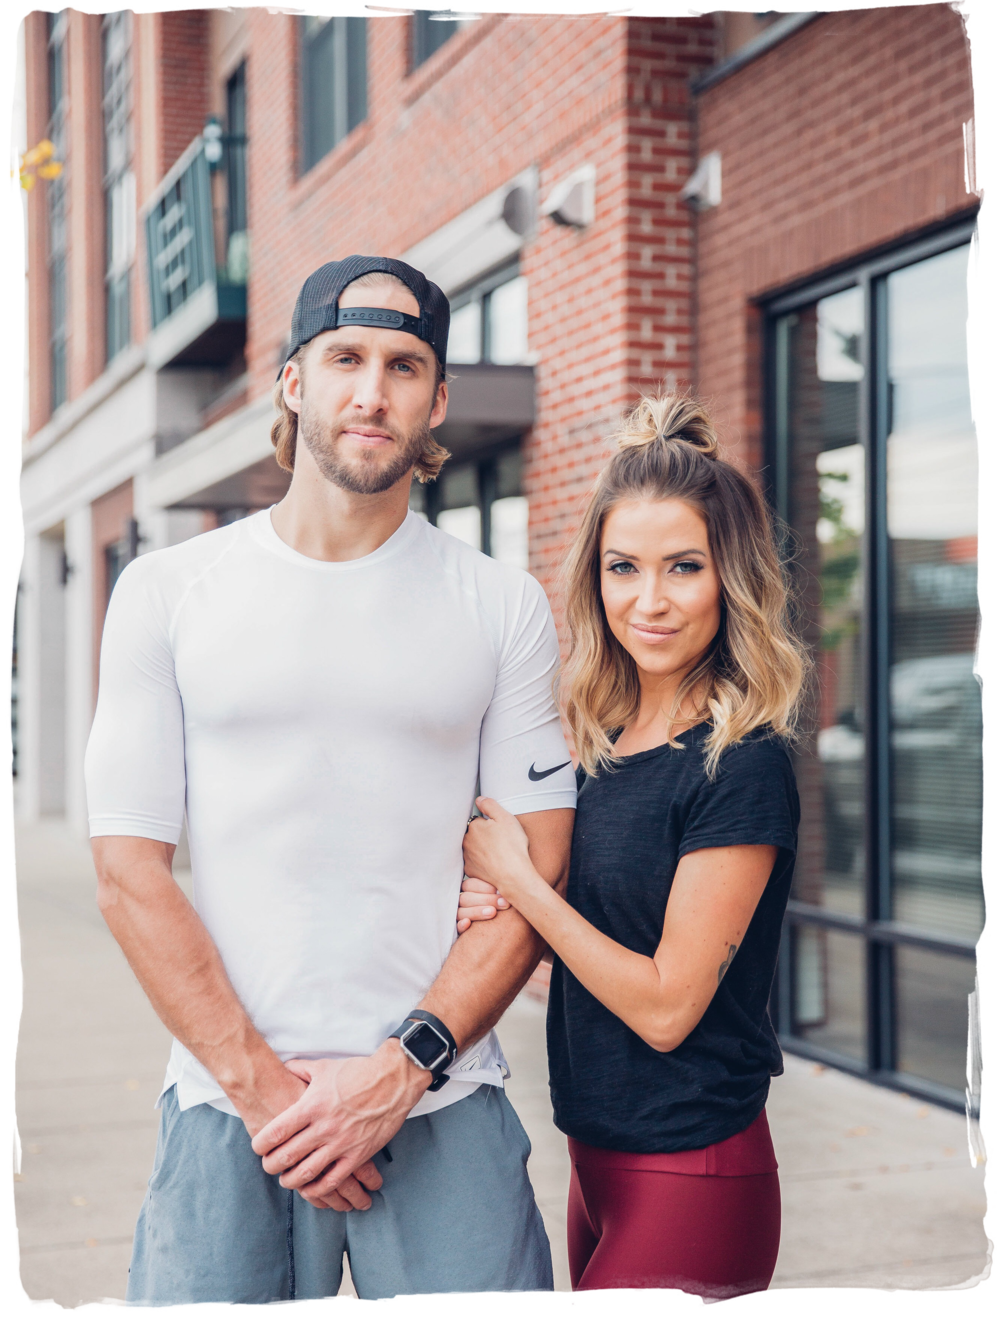 KAITLYN BRISTOWE + SHAWN BOOTH      THE BACHELORETTE